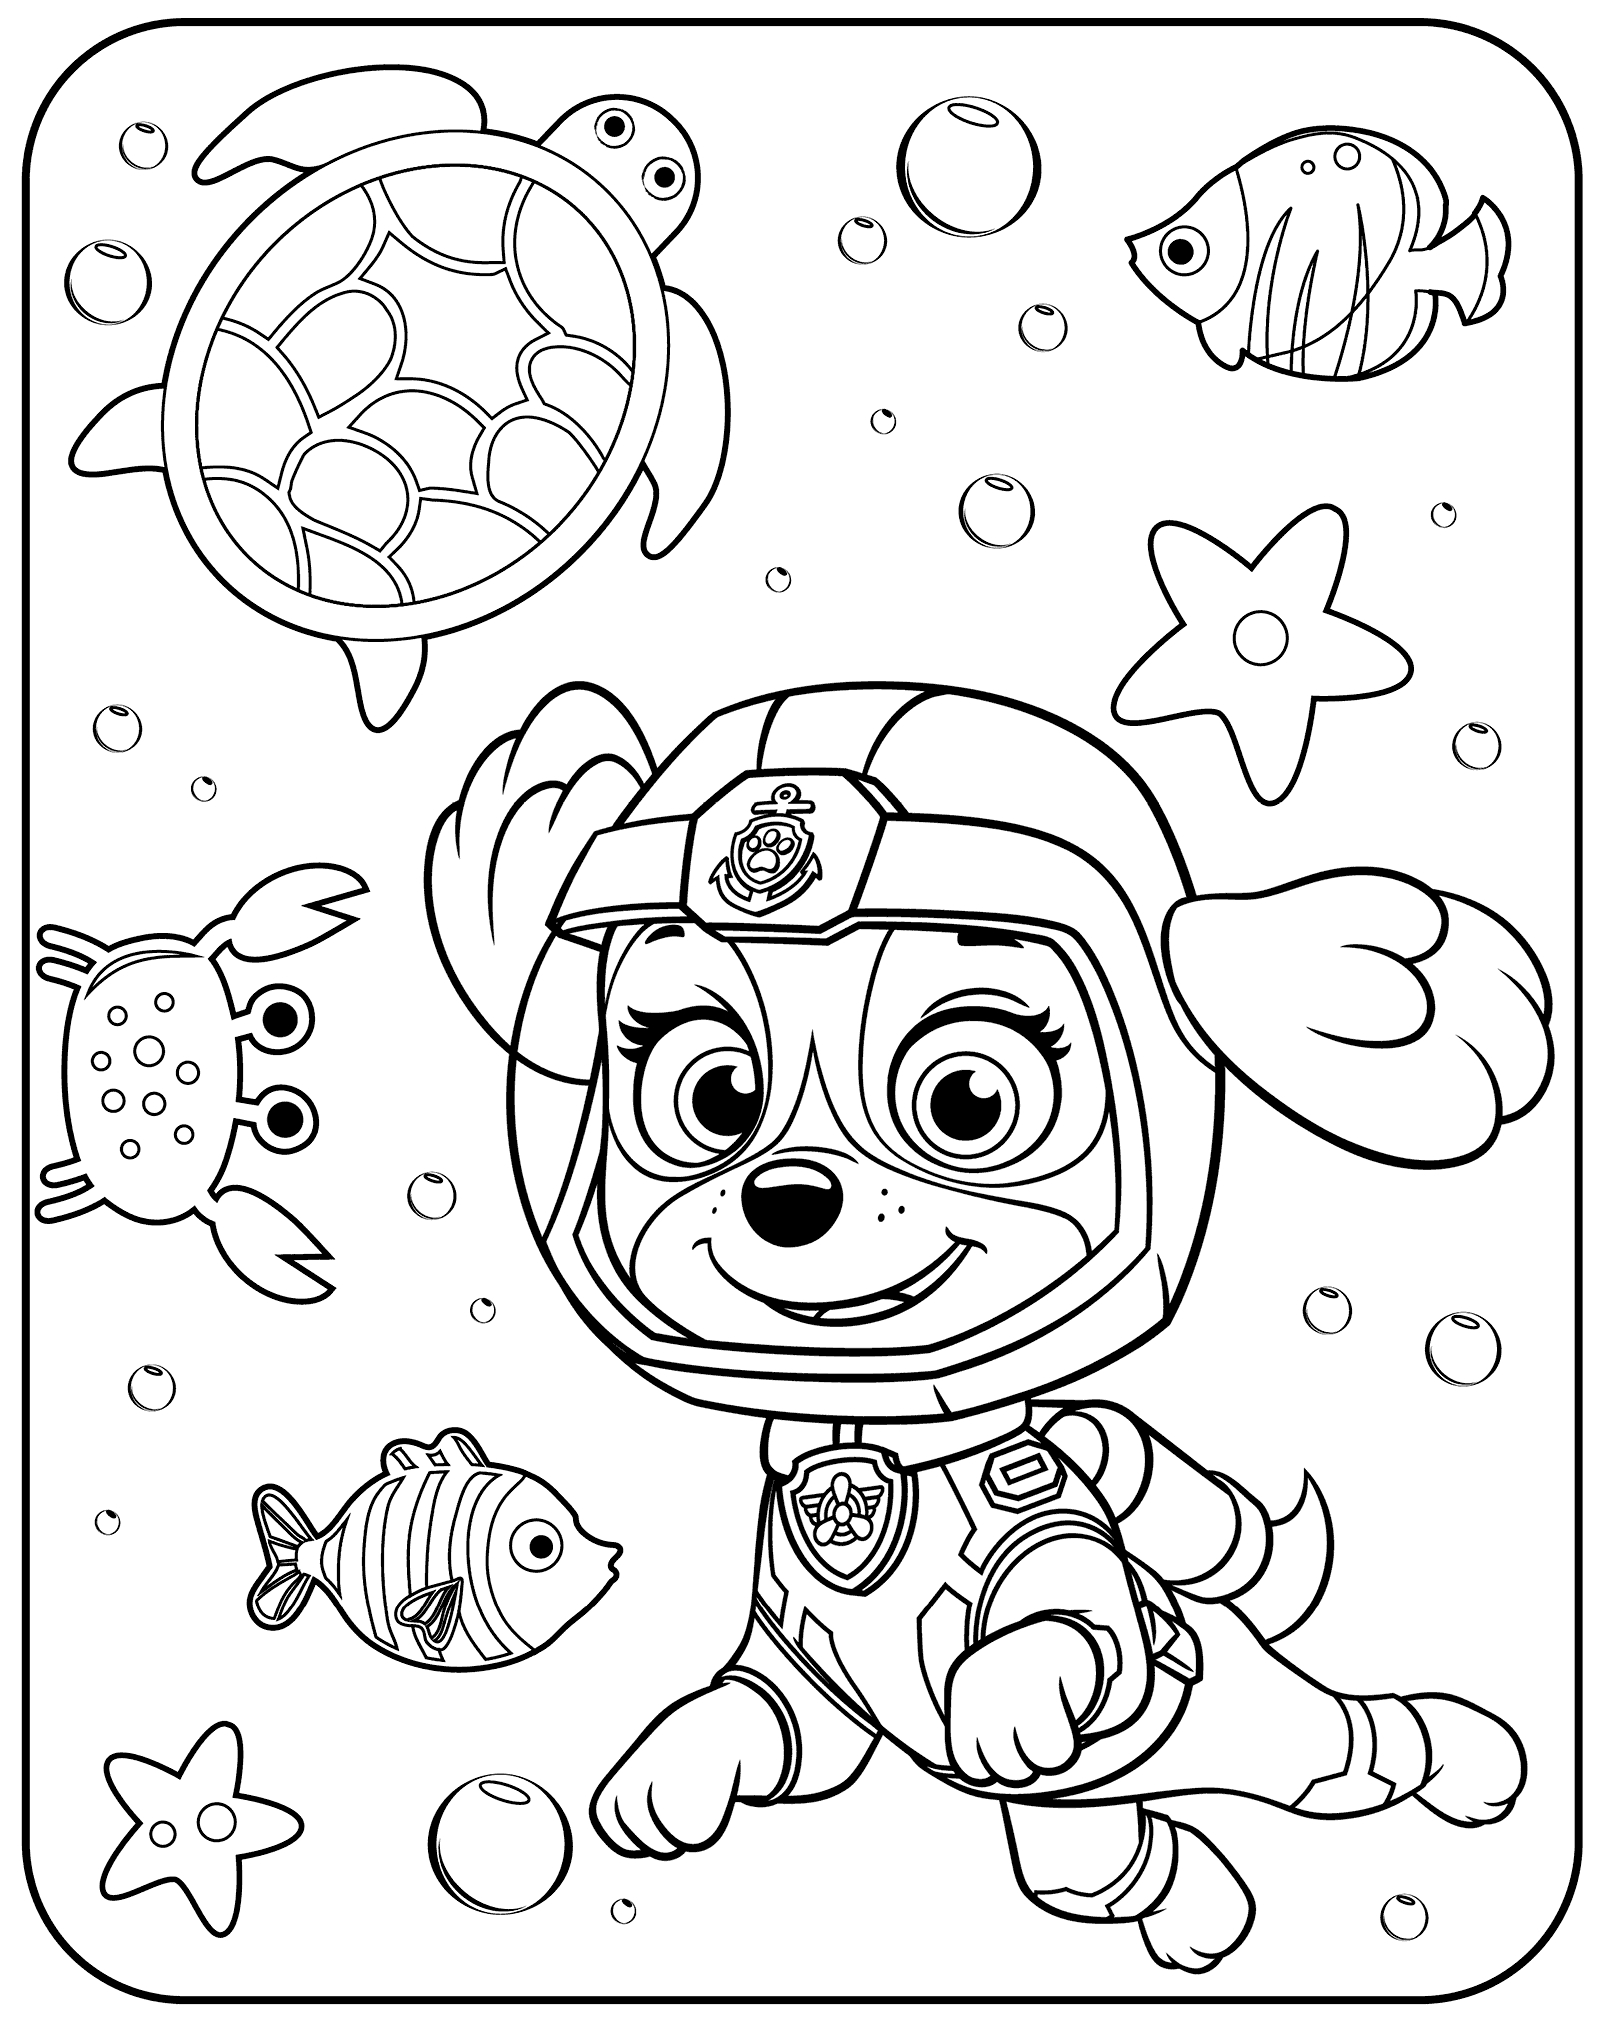 paw patrol coloring characters paw patrol characters coloring pages at getcoloringscom coloring paw characters patrol